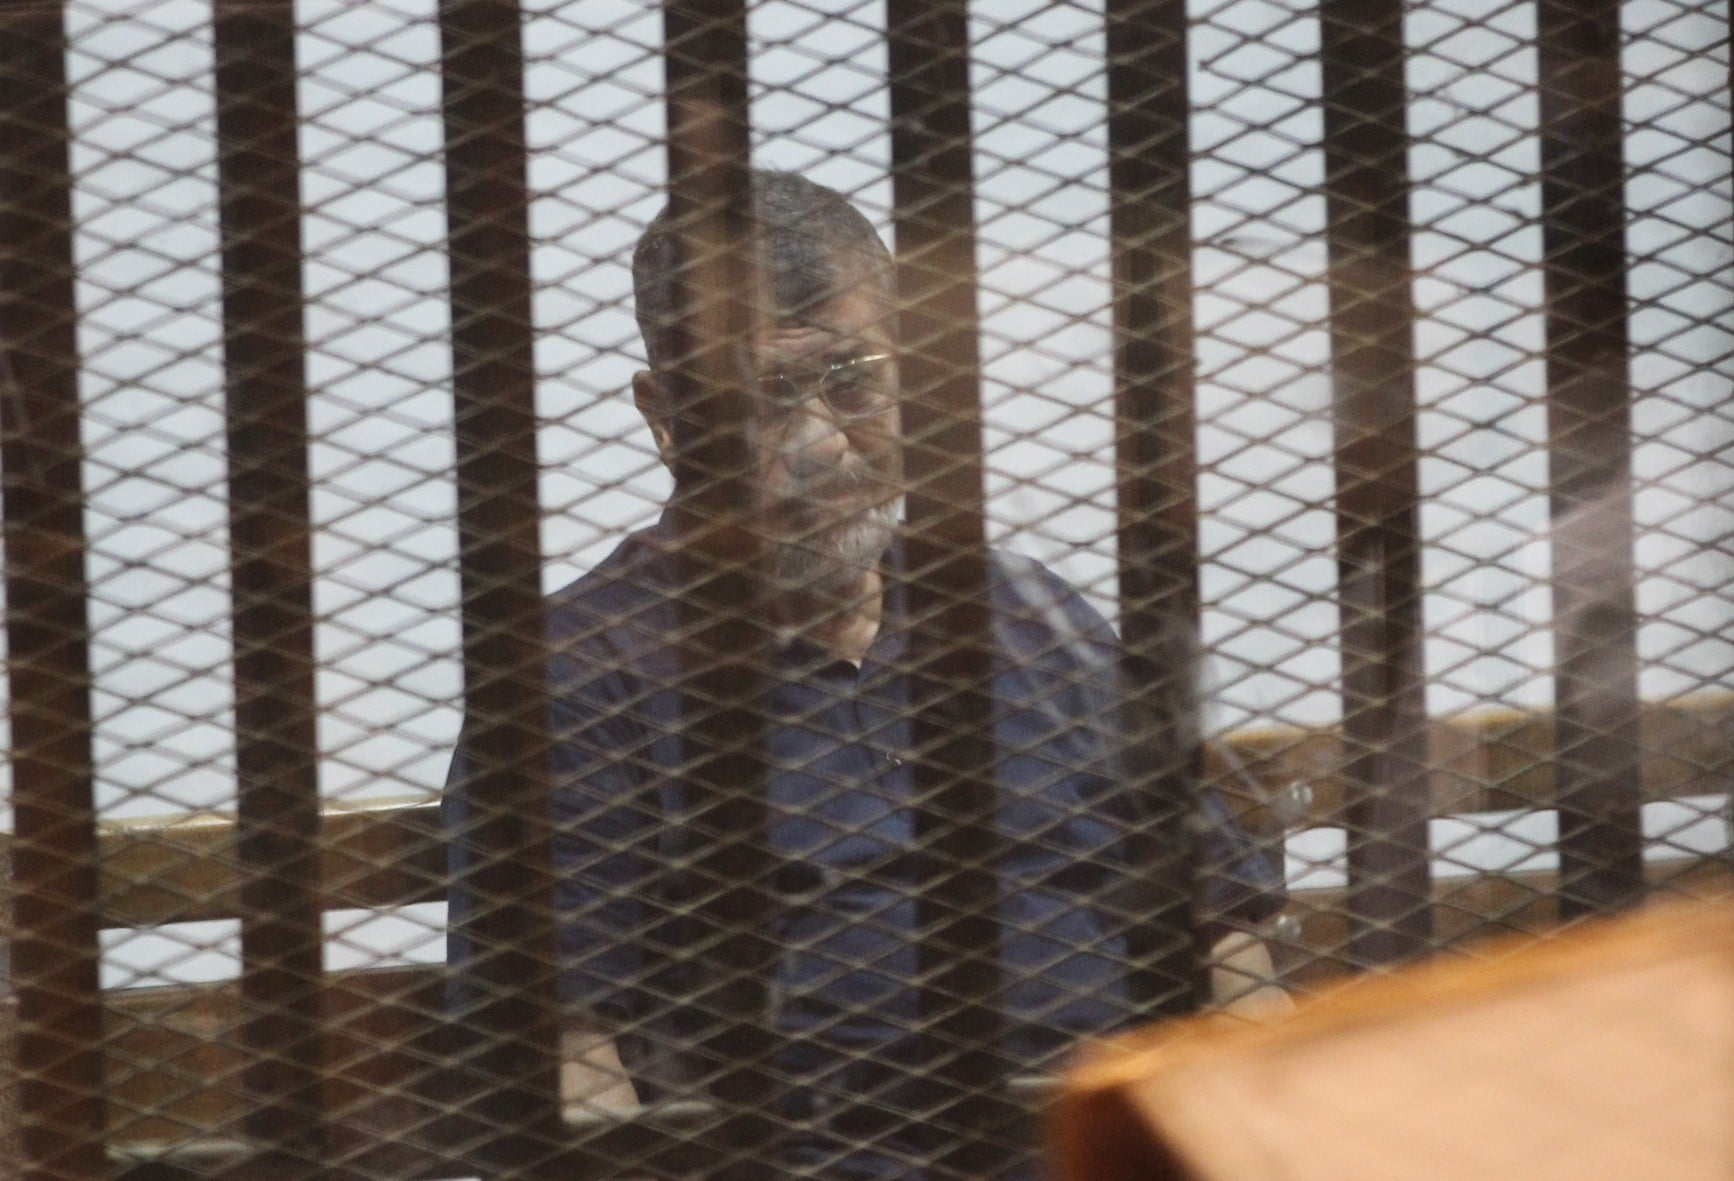 Muhammad Morsi in court trial, May 2015